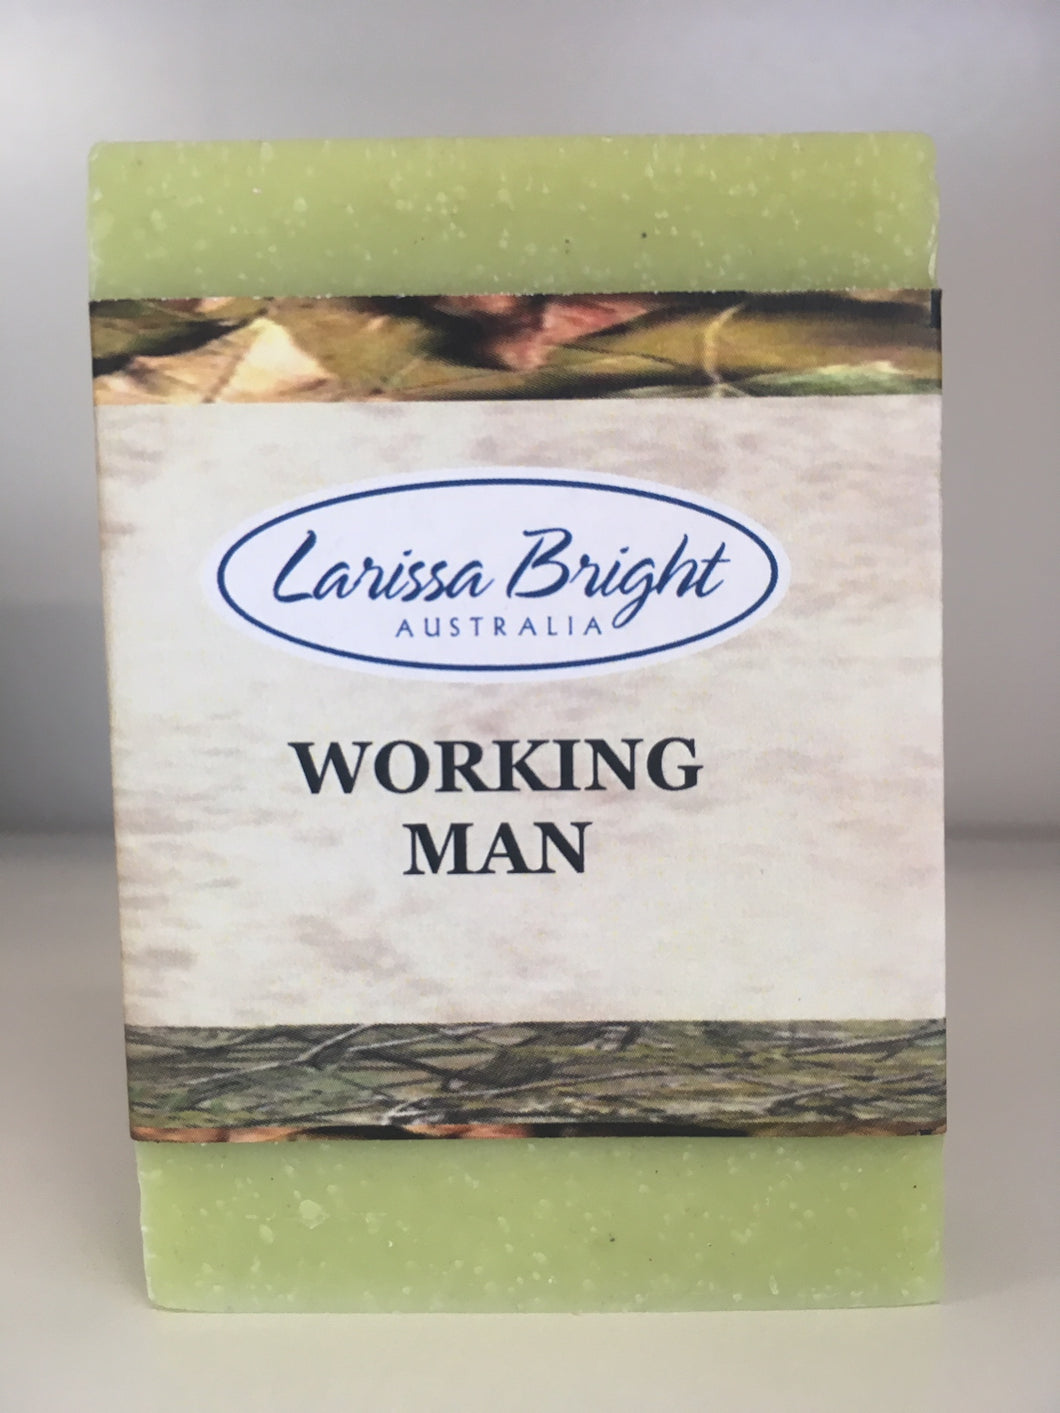 Working Man - Larissa Bright Australia